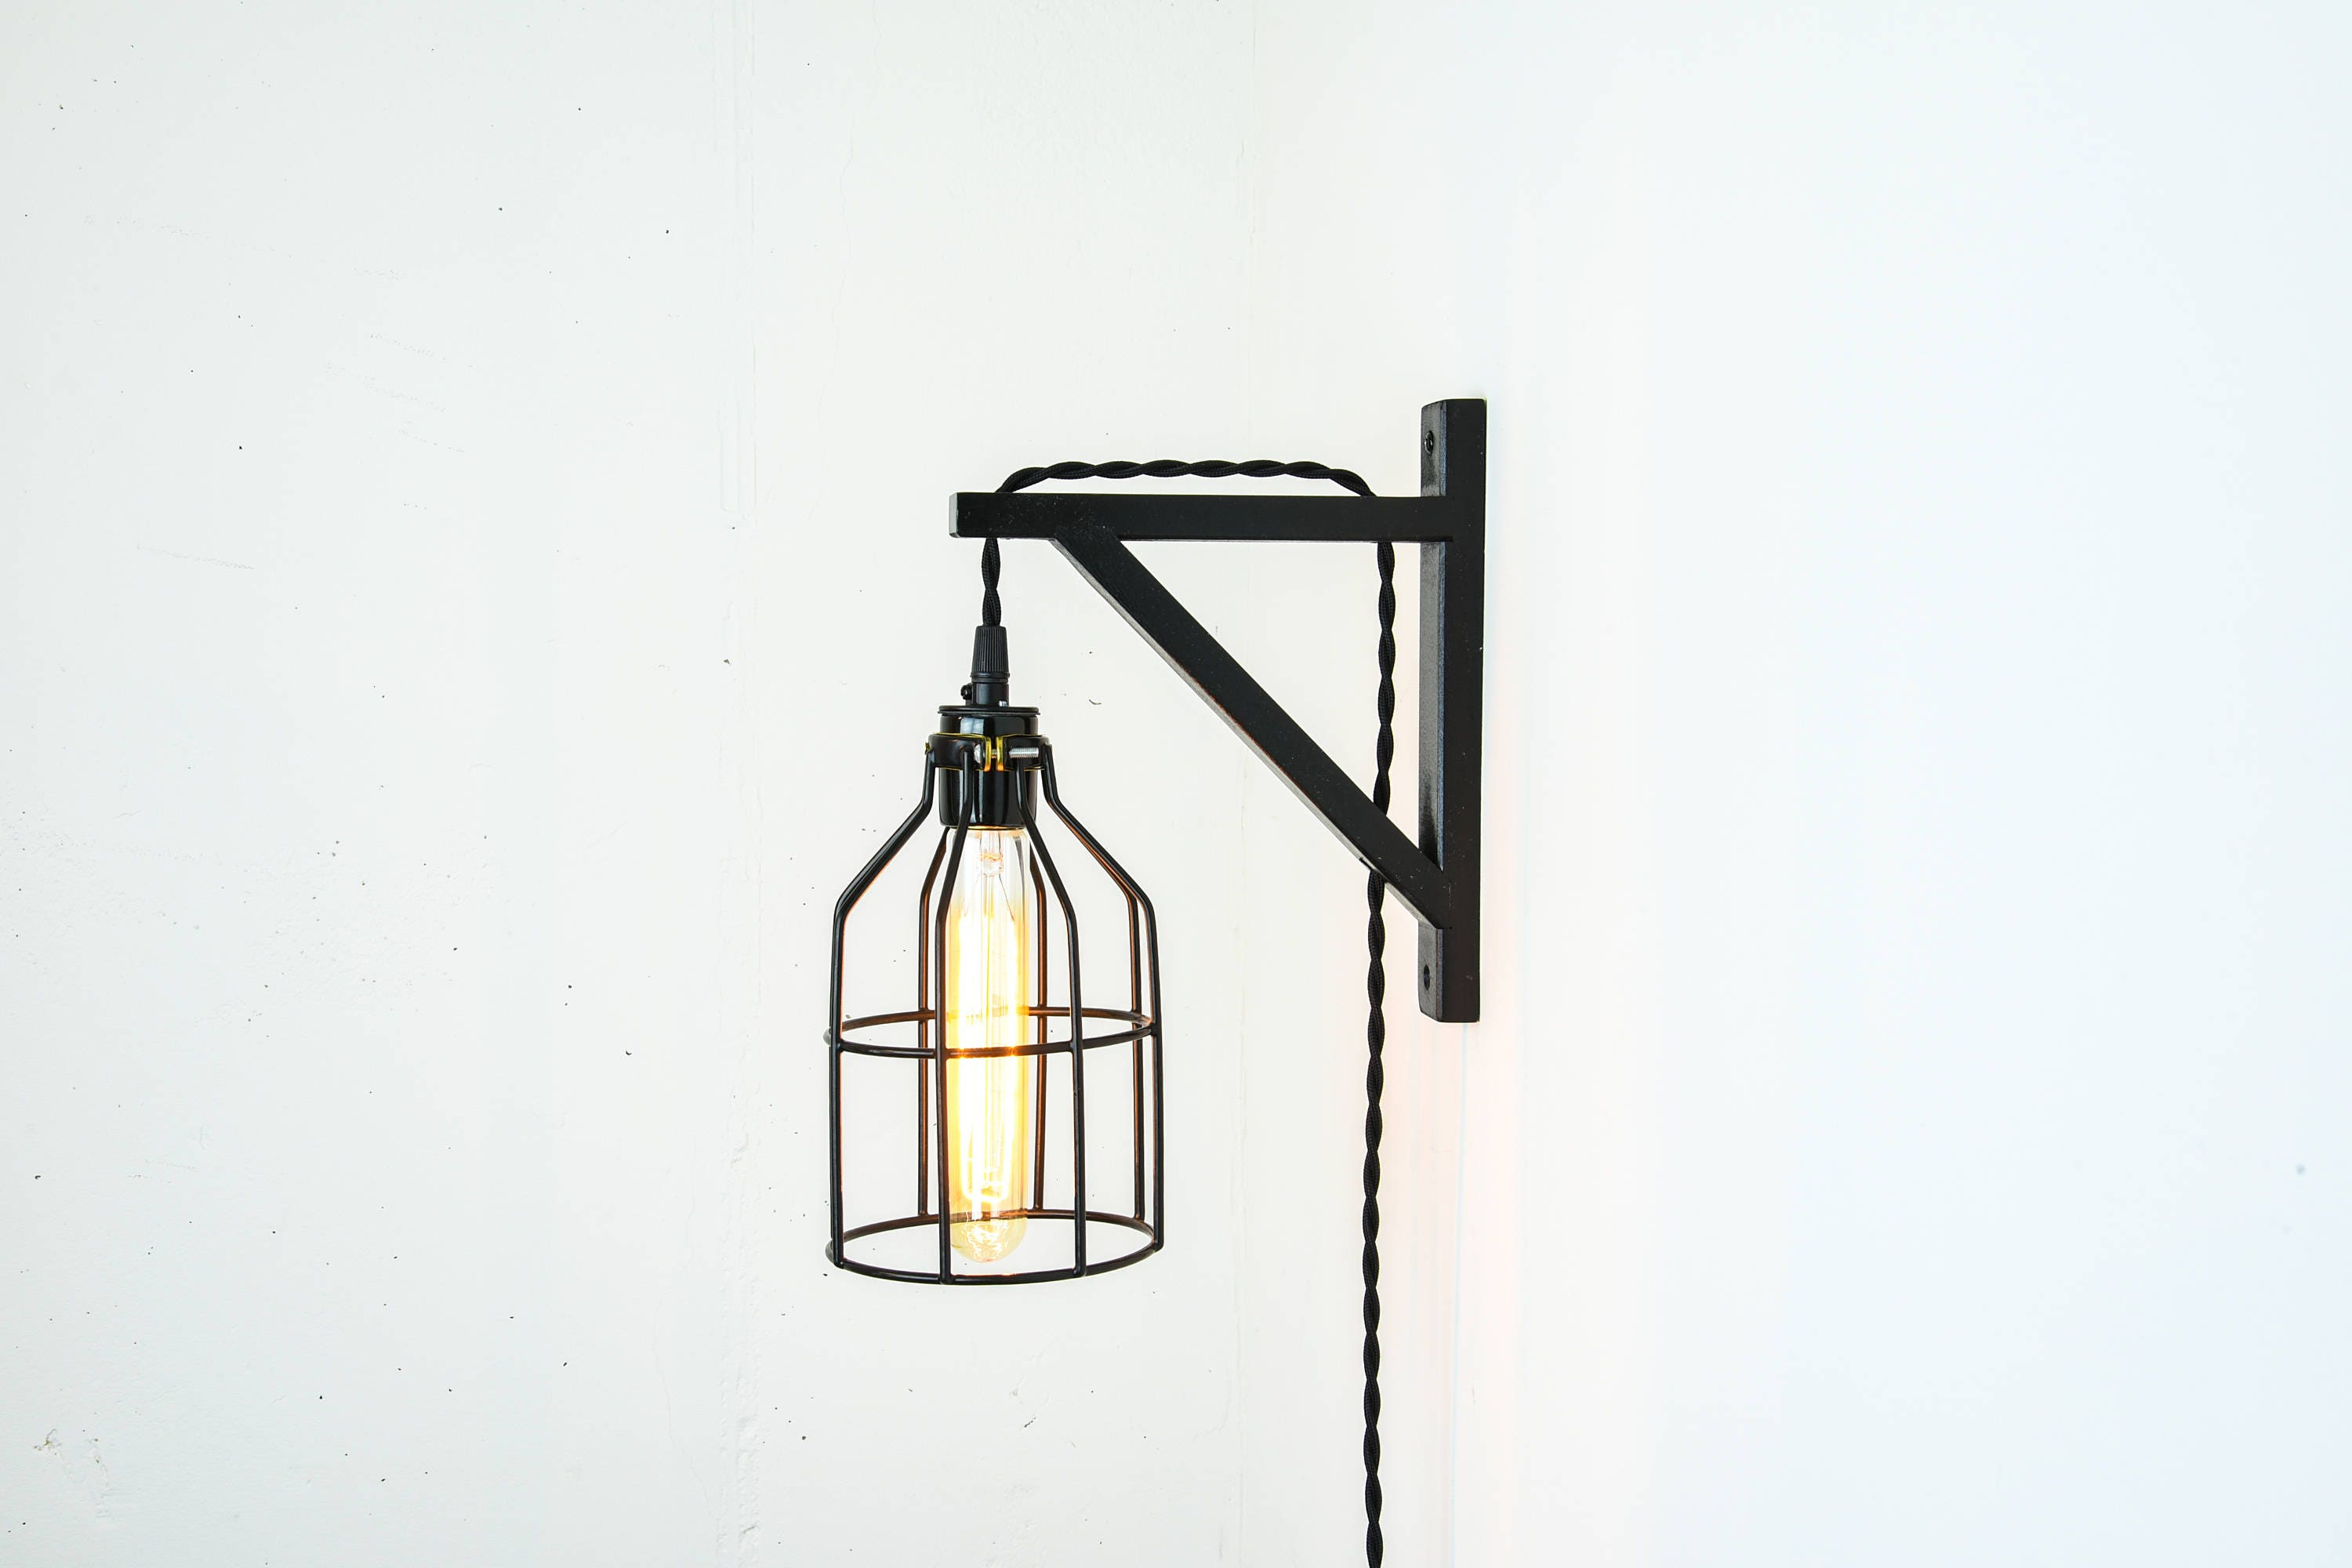 handcrafted wall classic a lights plug pin arcing materials lines isaac to the vintage short this inspired arm in with light fused electric sconce create brass we schoolhouse original scandinavian of